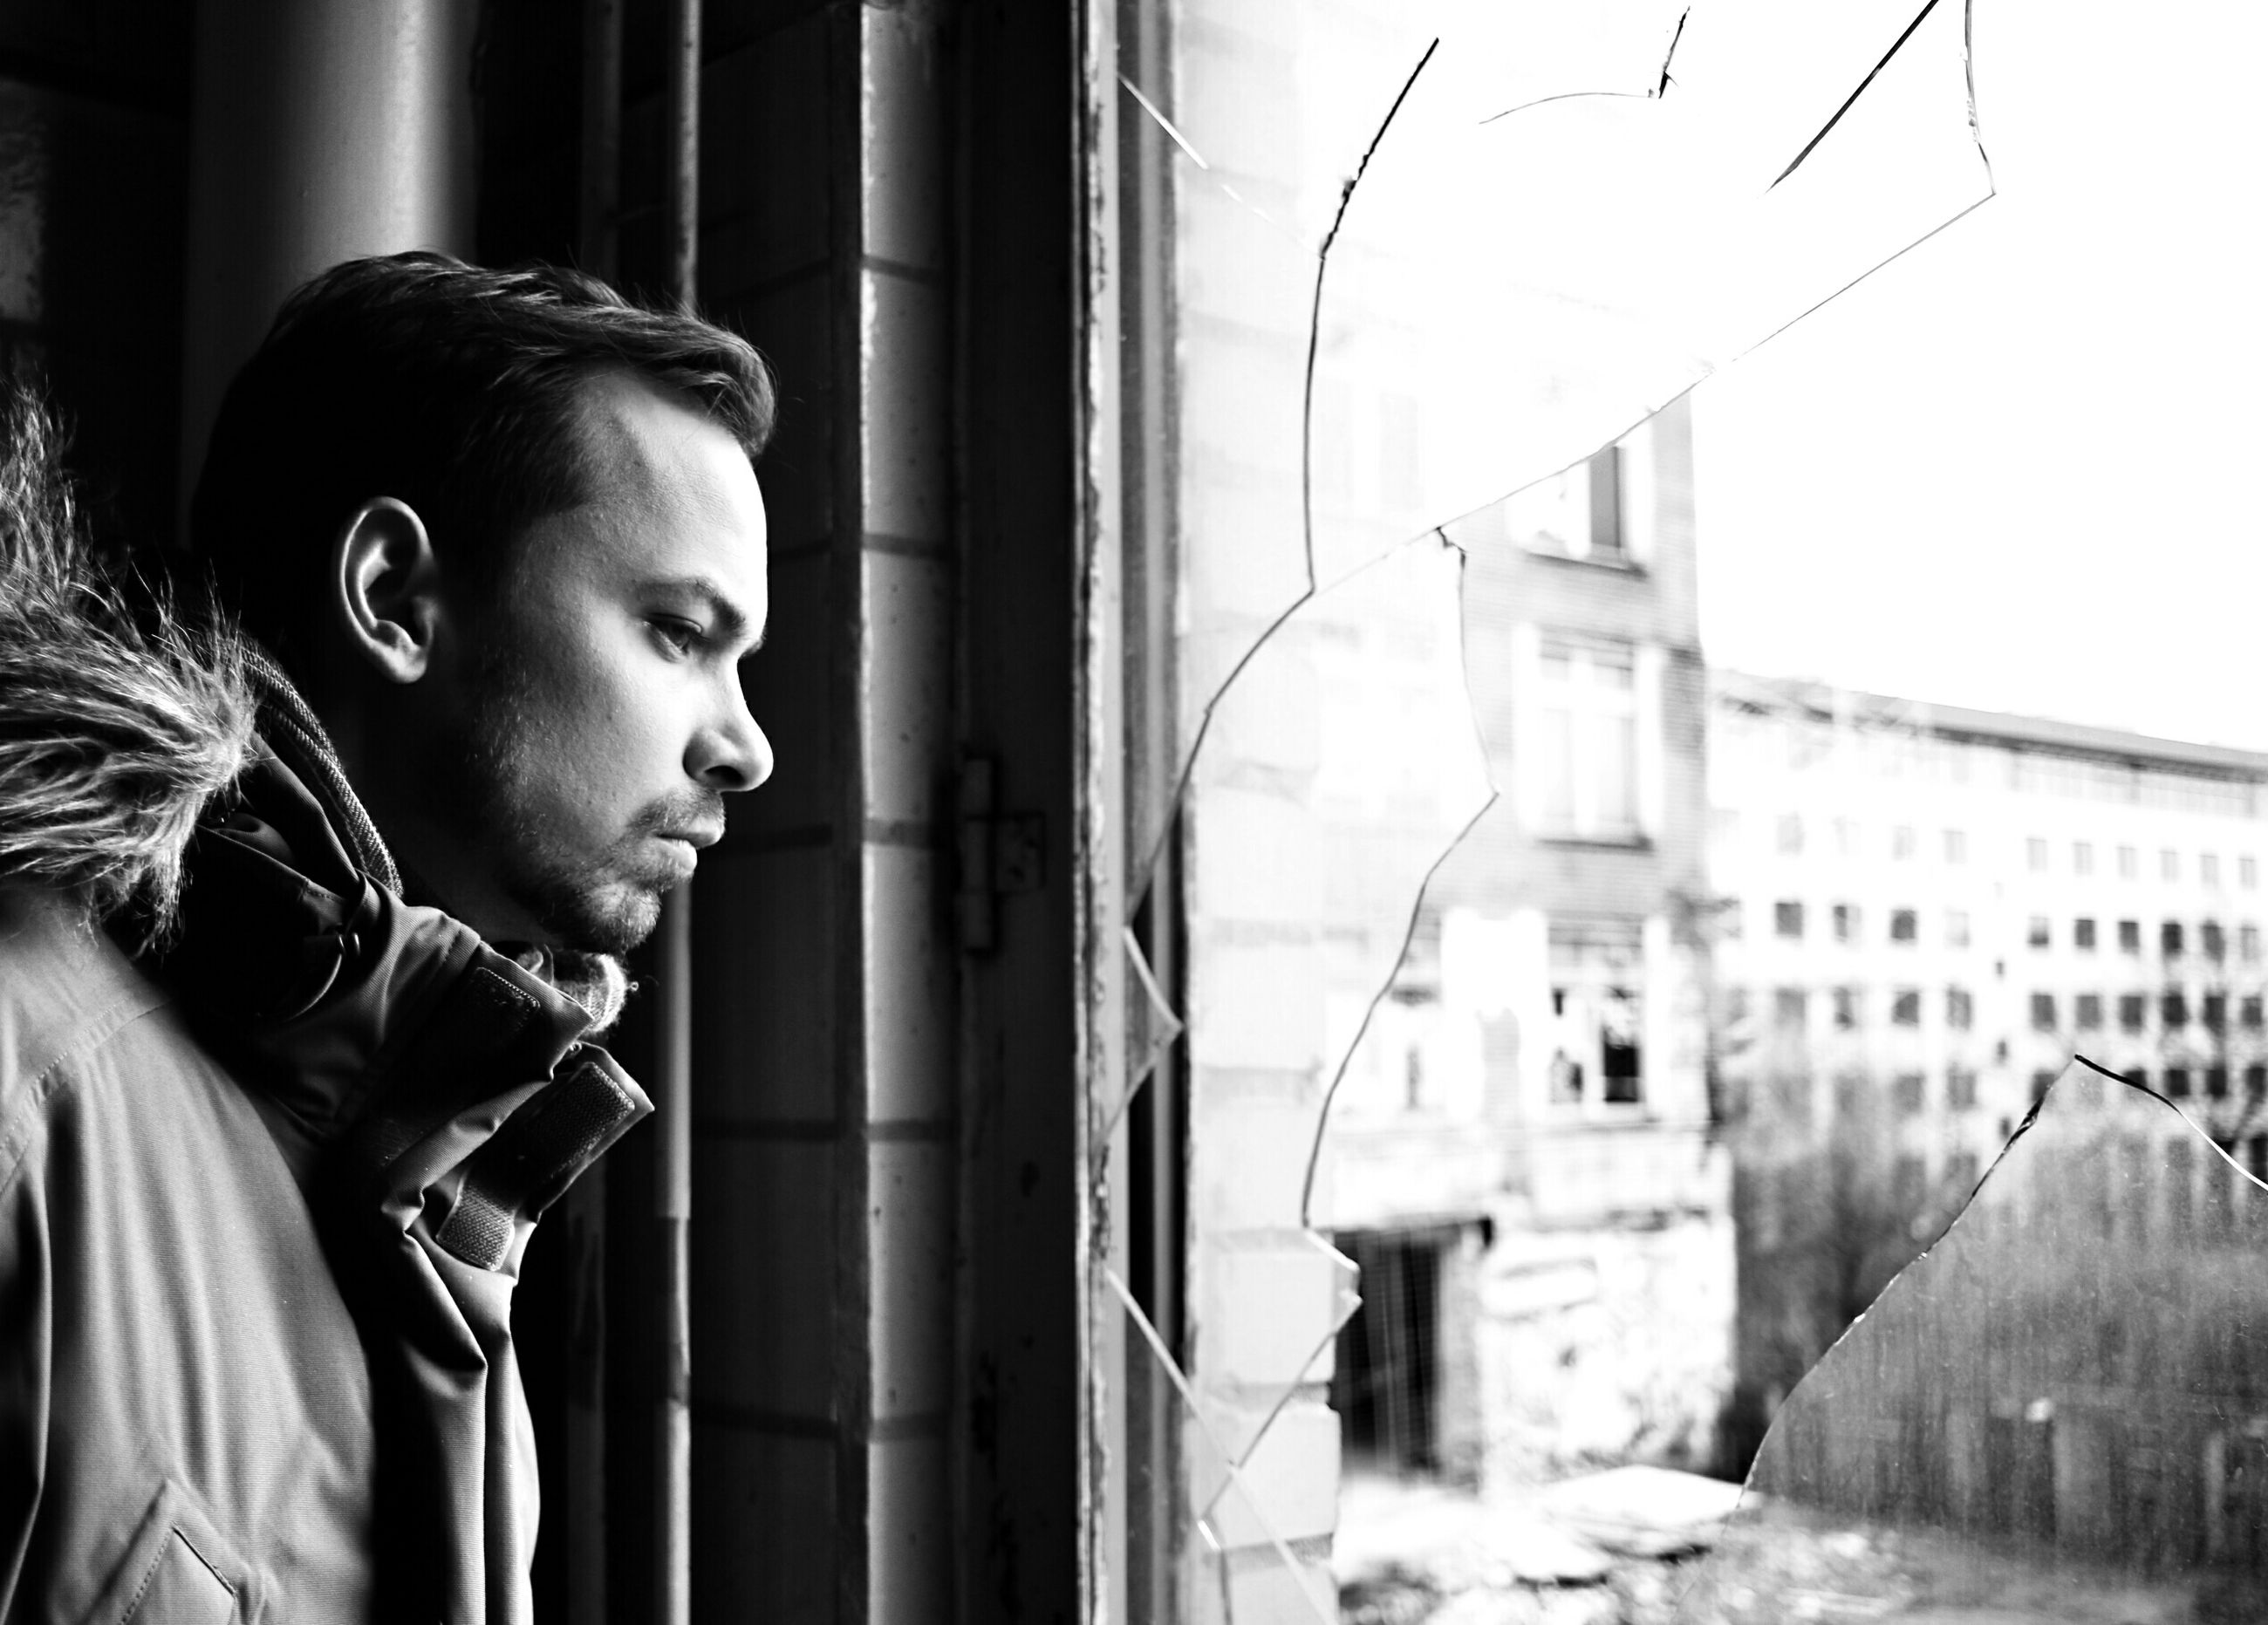 architecture, built structure, building exterior, window, young adult, lifestyles, indoors, person, day, young men, building, human representation, art, leisure activity, headshot, front view, focus on foreground, side view